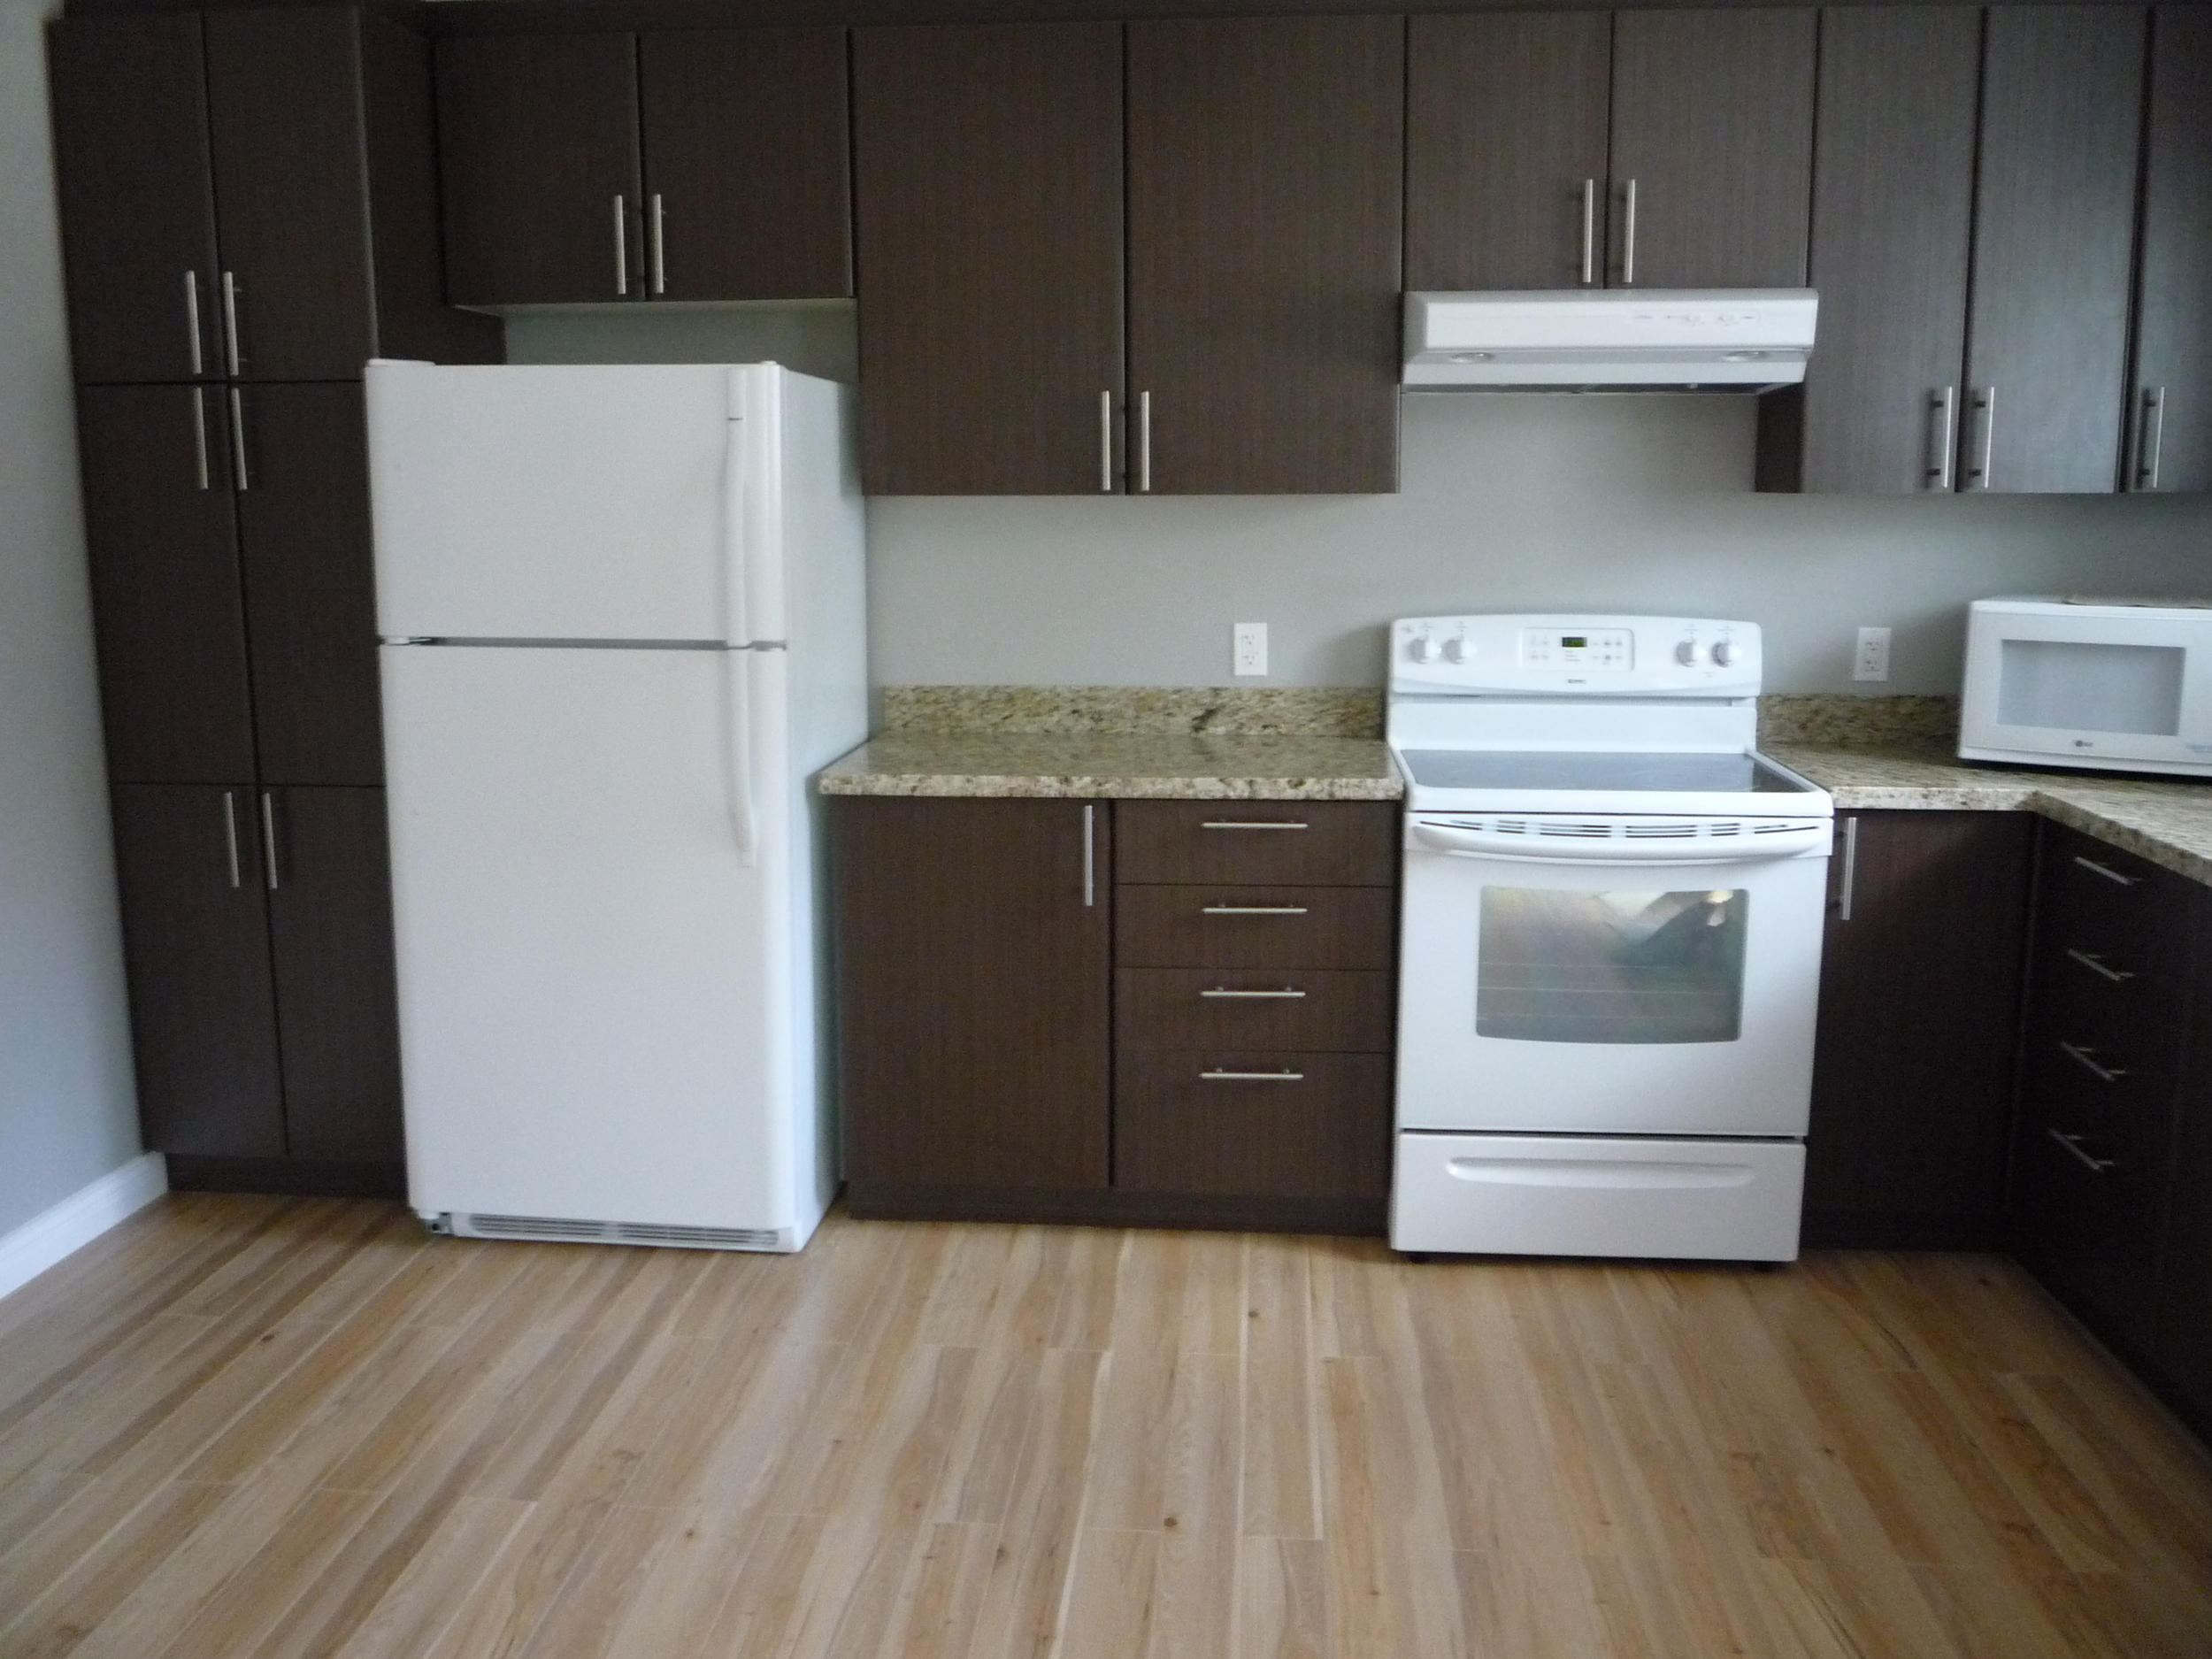 L-Shaped Kitchen with Modern Hardware and Quartz Countertops